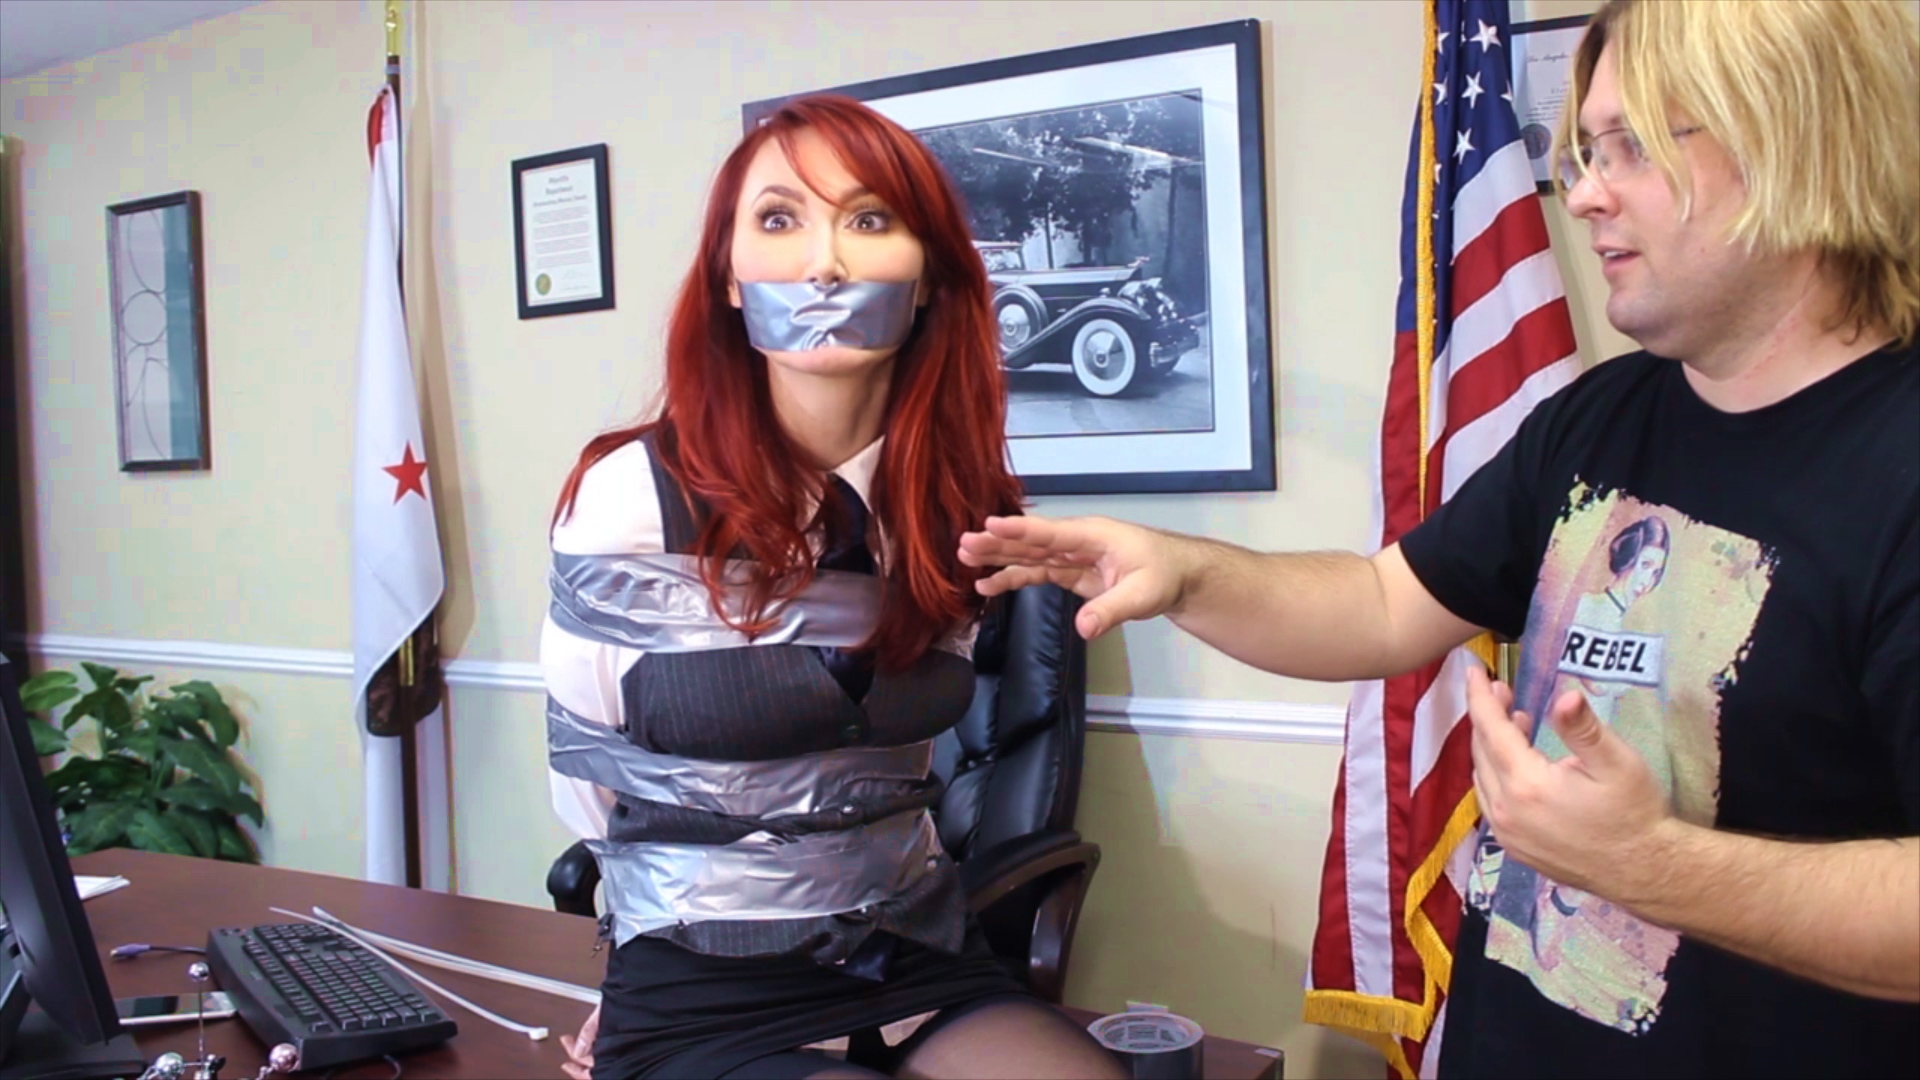 Redhead girl tied up in tape bondage